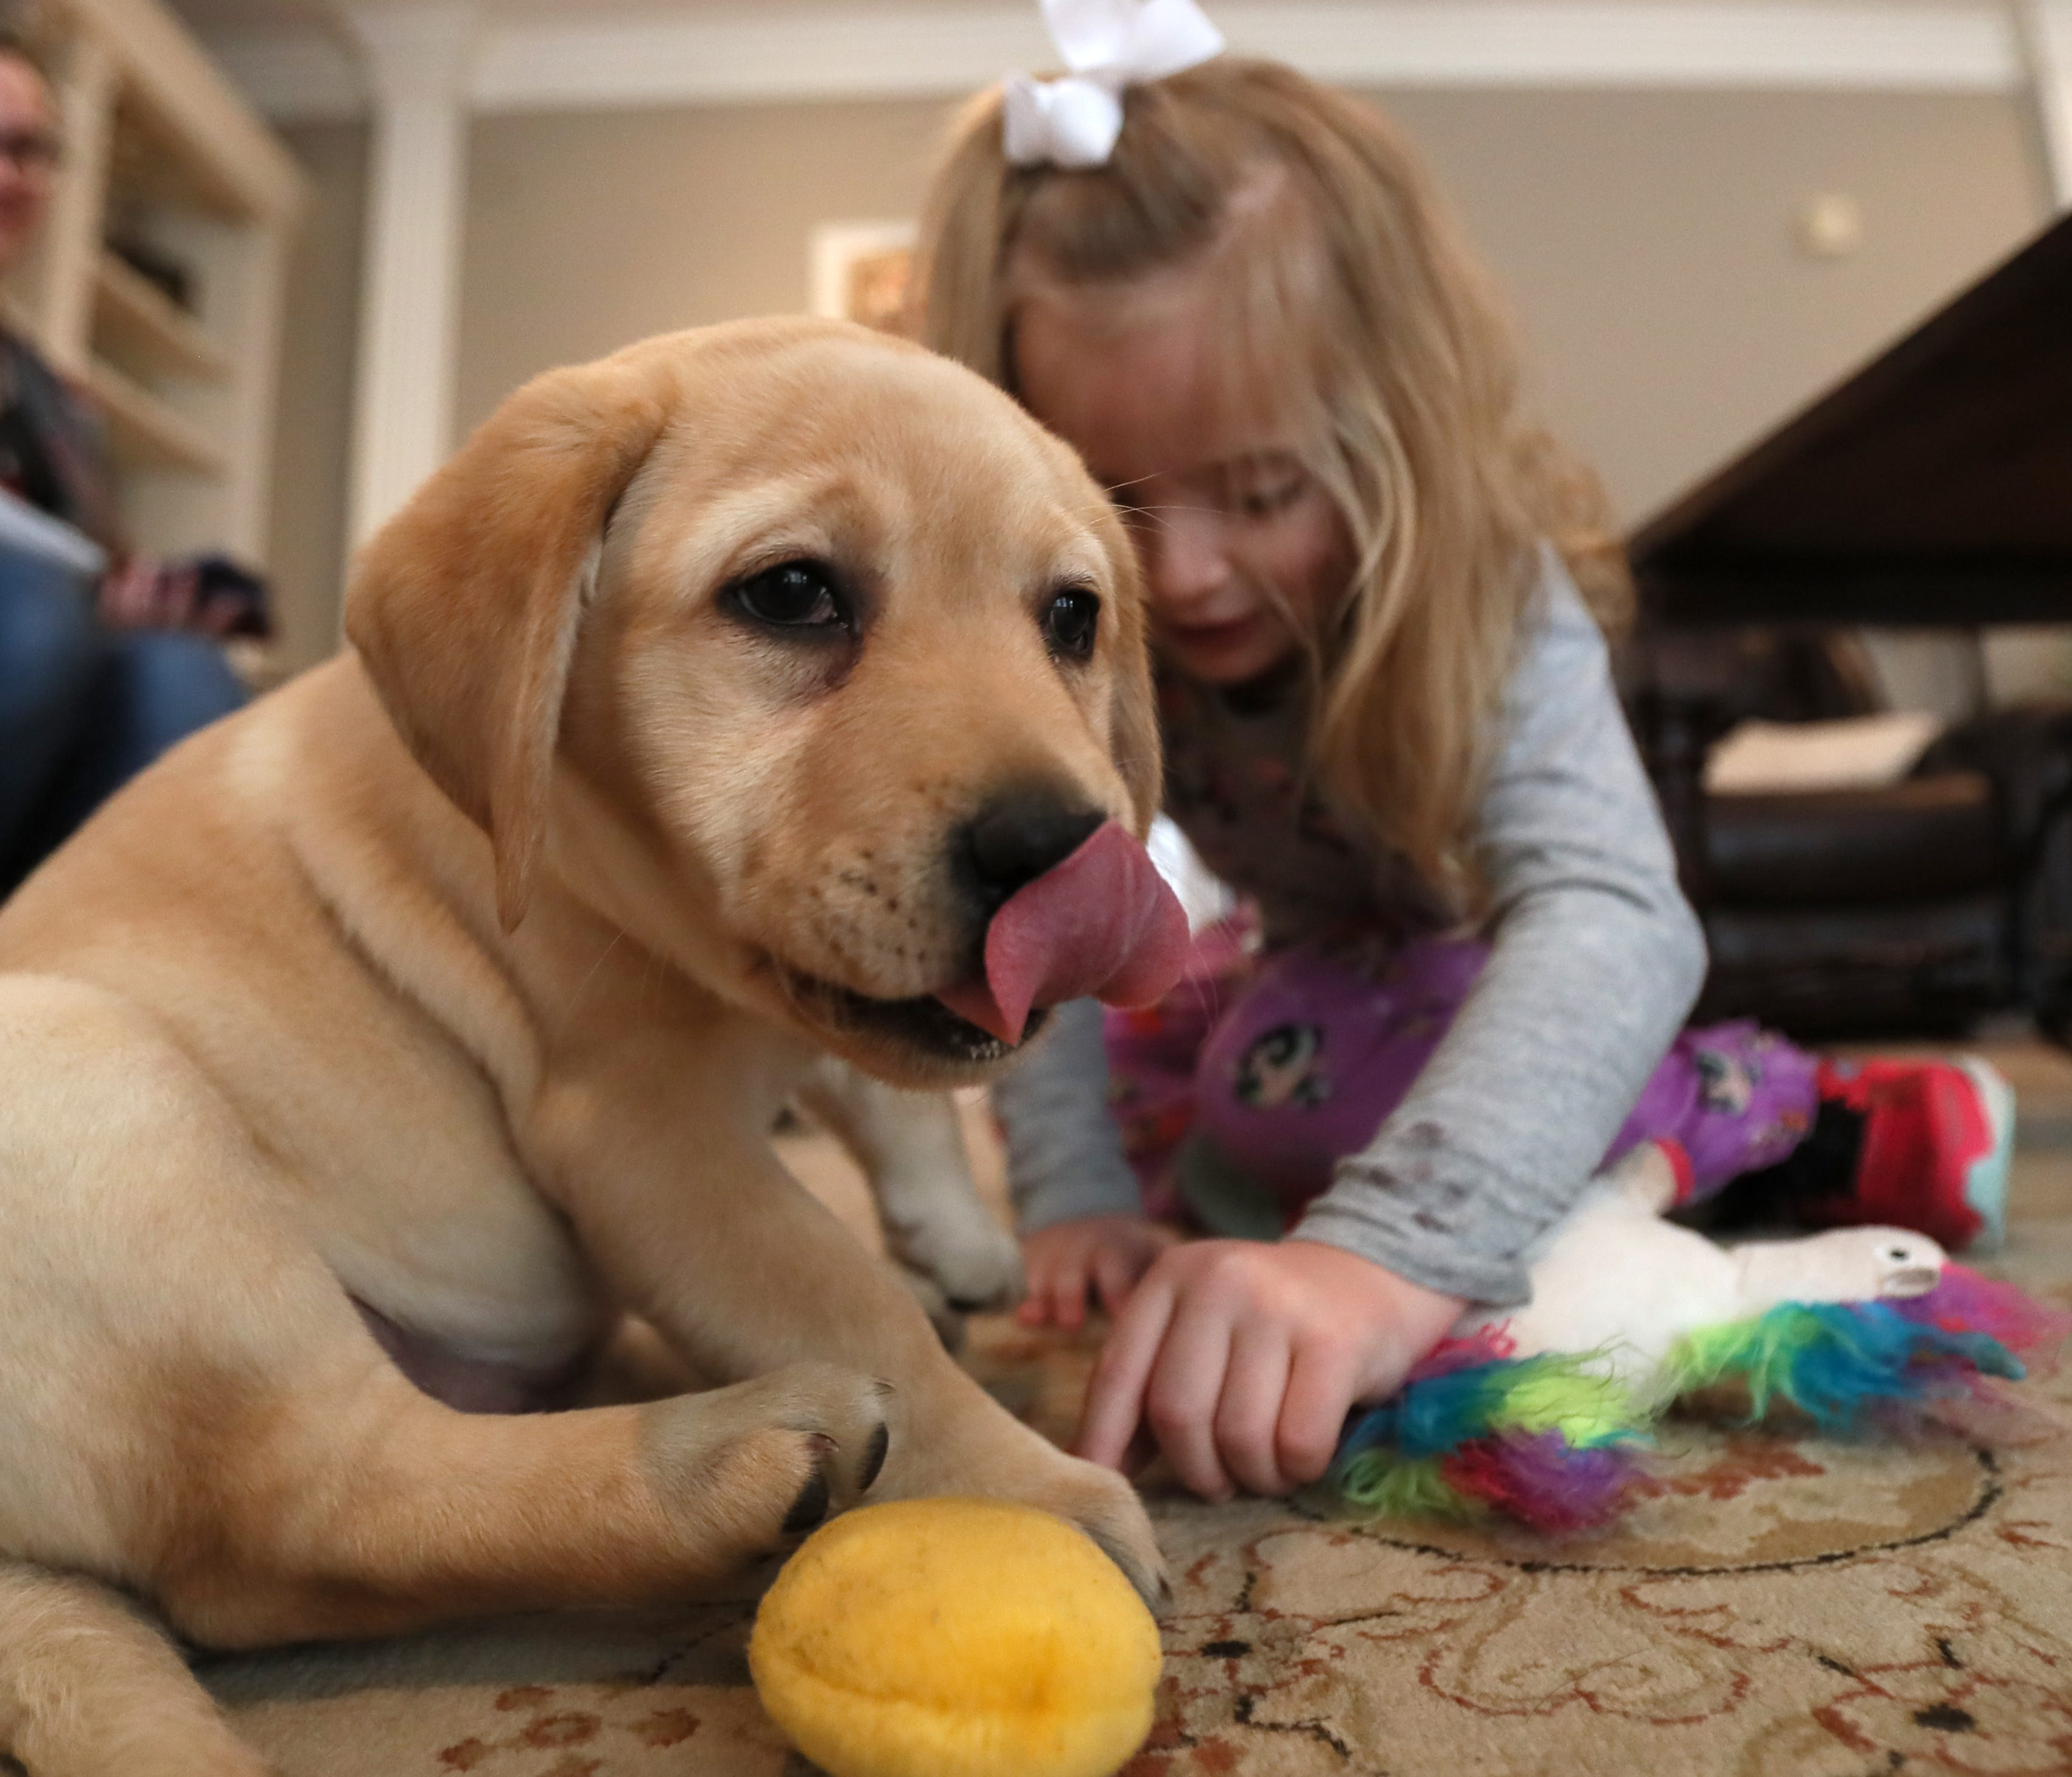 Arlington girl gets her service puppy after community raises $10,500 | The Commercial Appeal